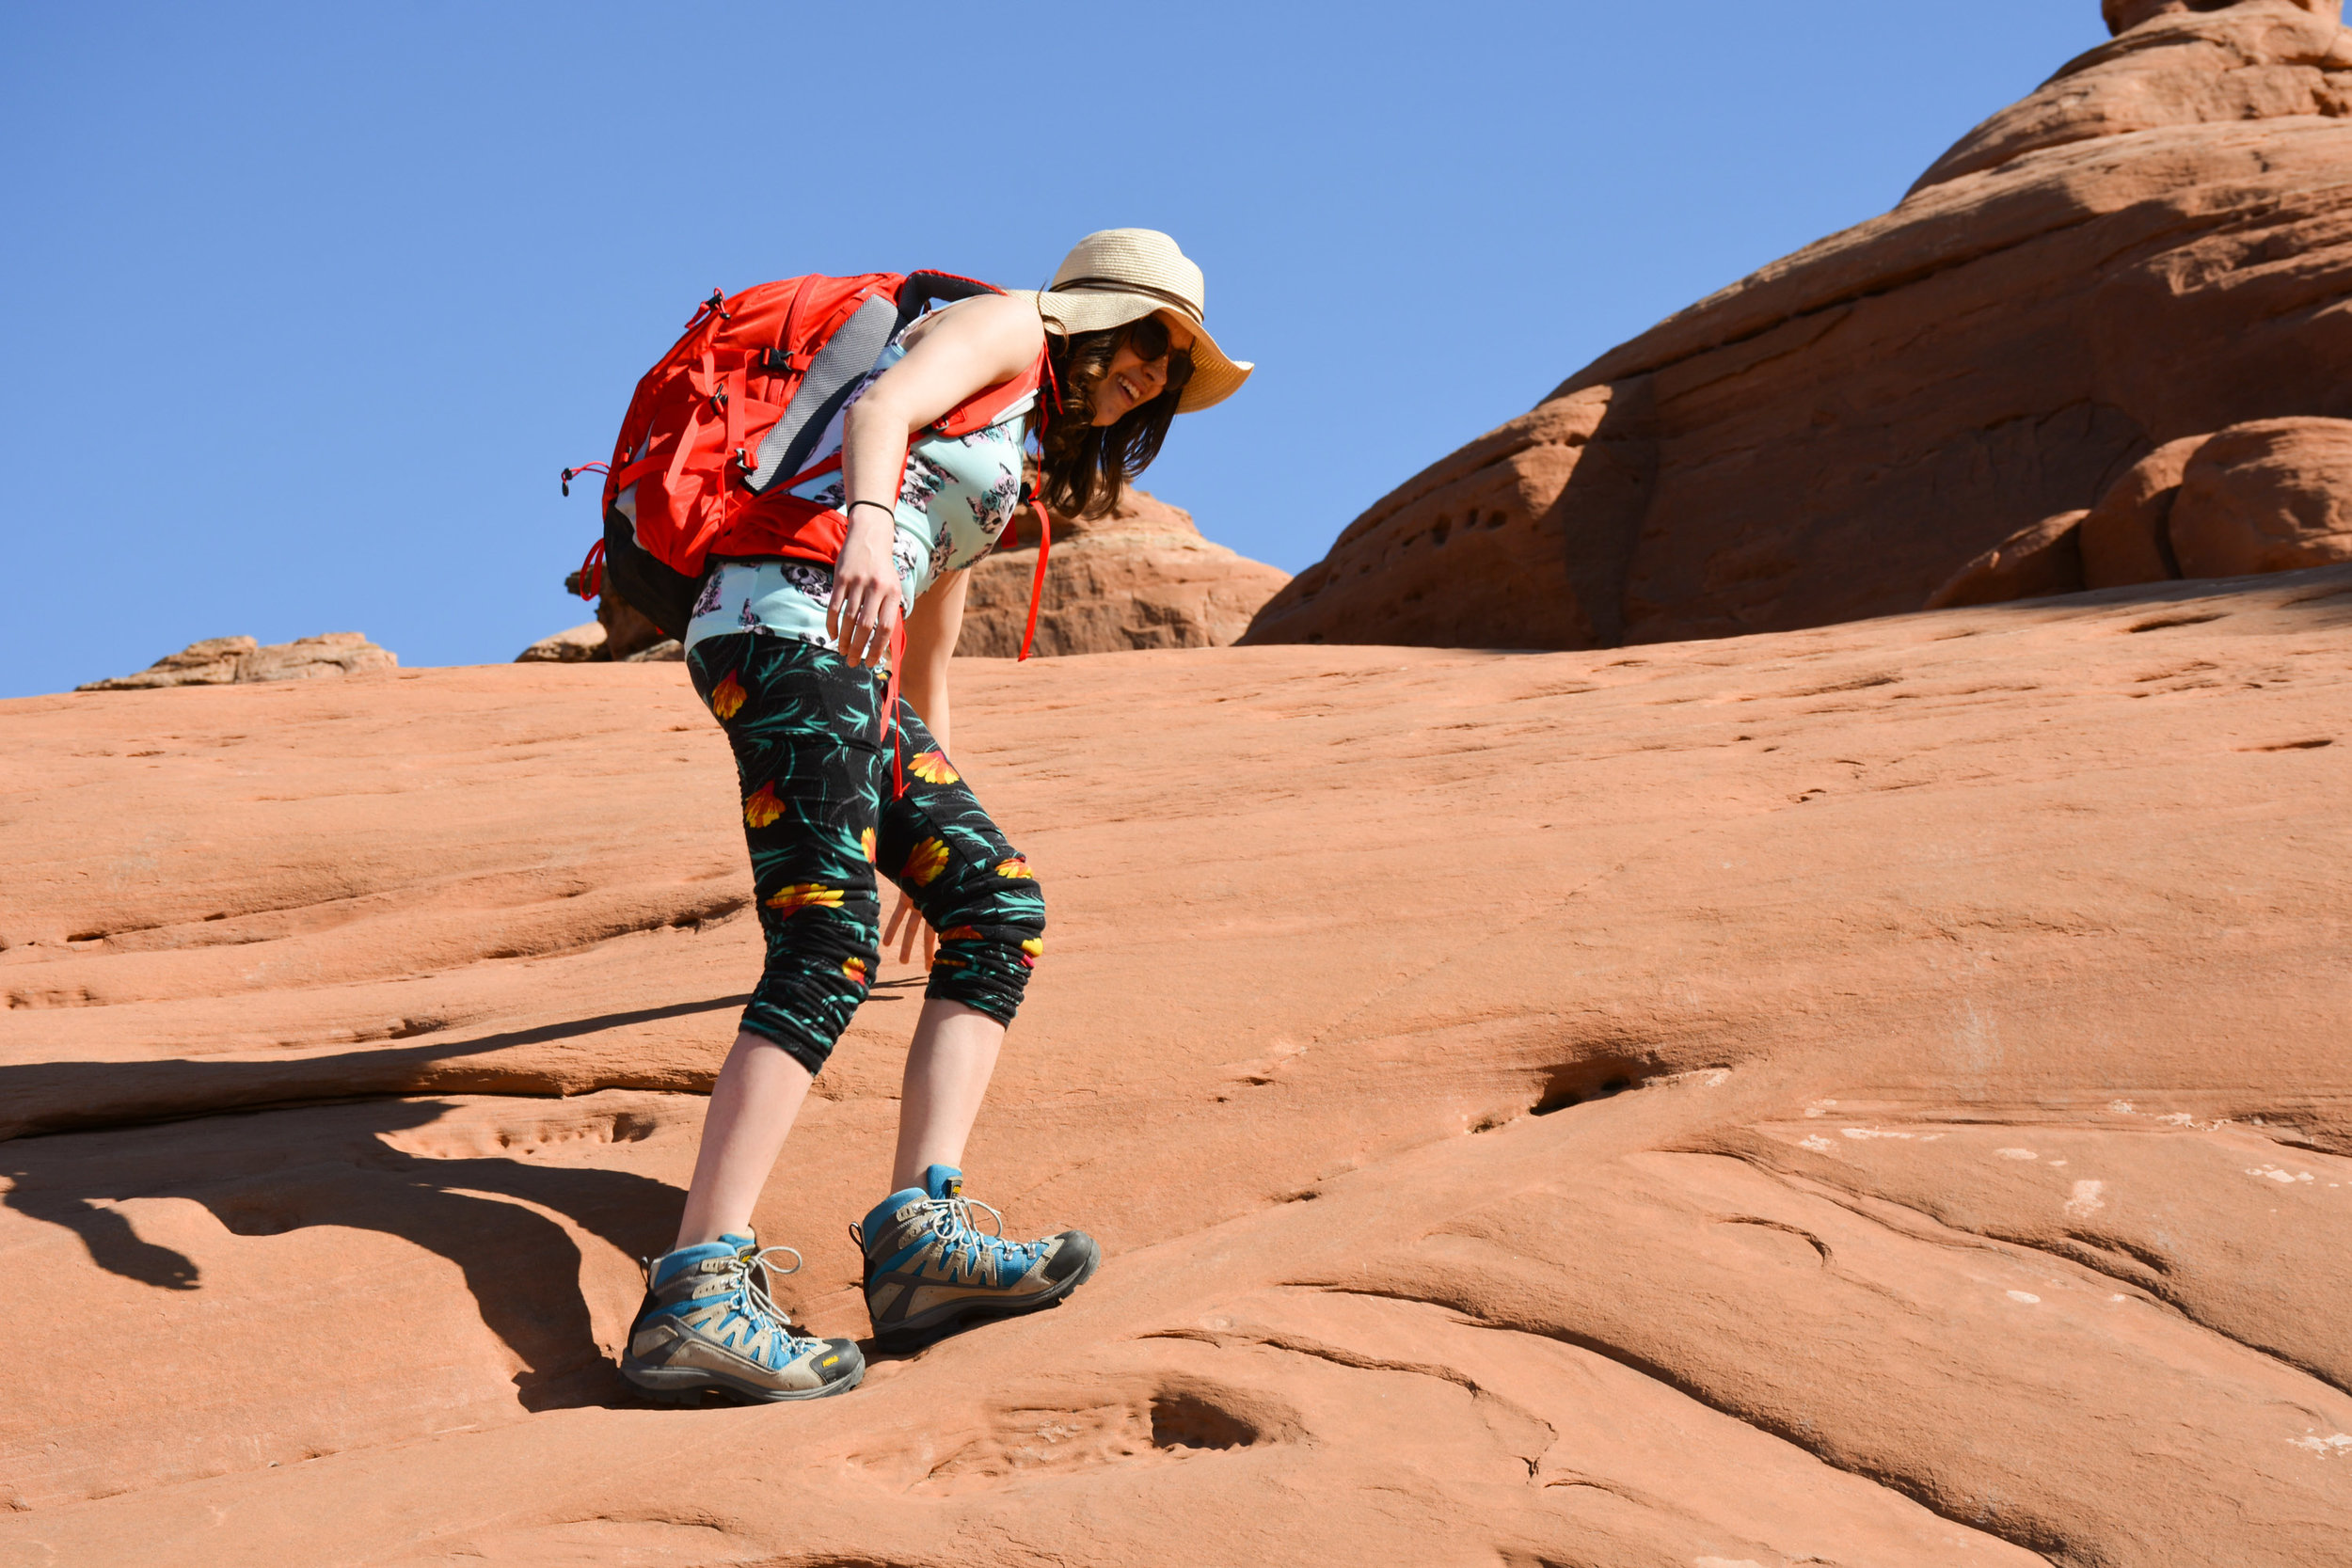 Natalie Hiking to the Delicate Arch in Moab, UT